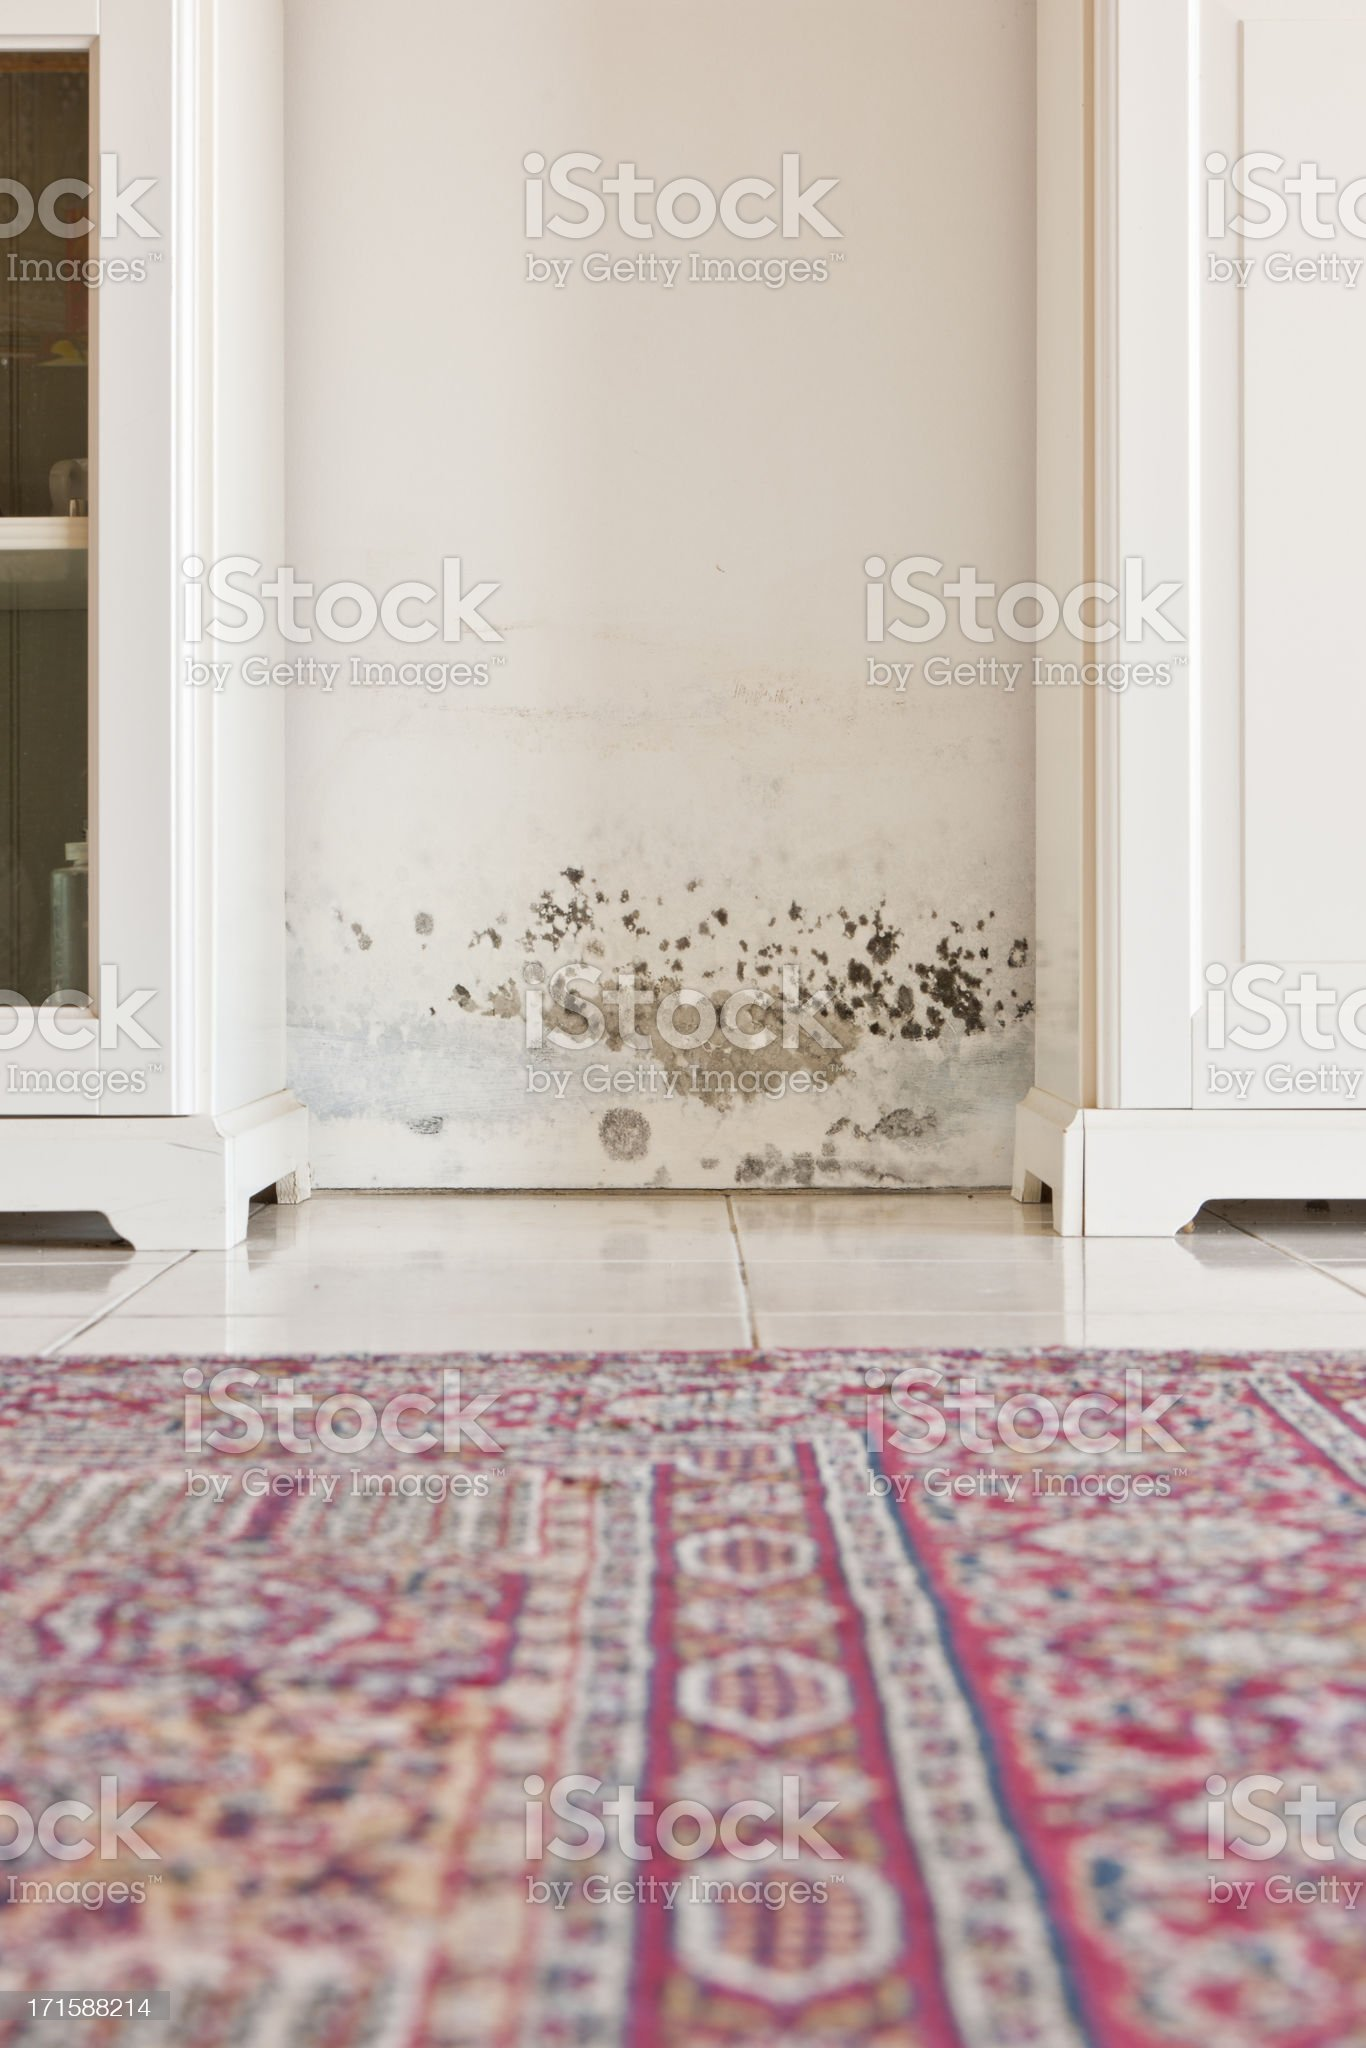 Mold Mould Stains on Damp Wall between Cabinets royalty-free stock photo